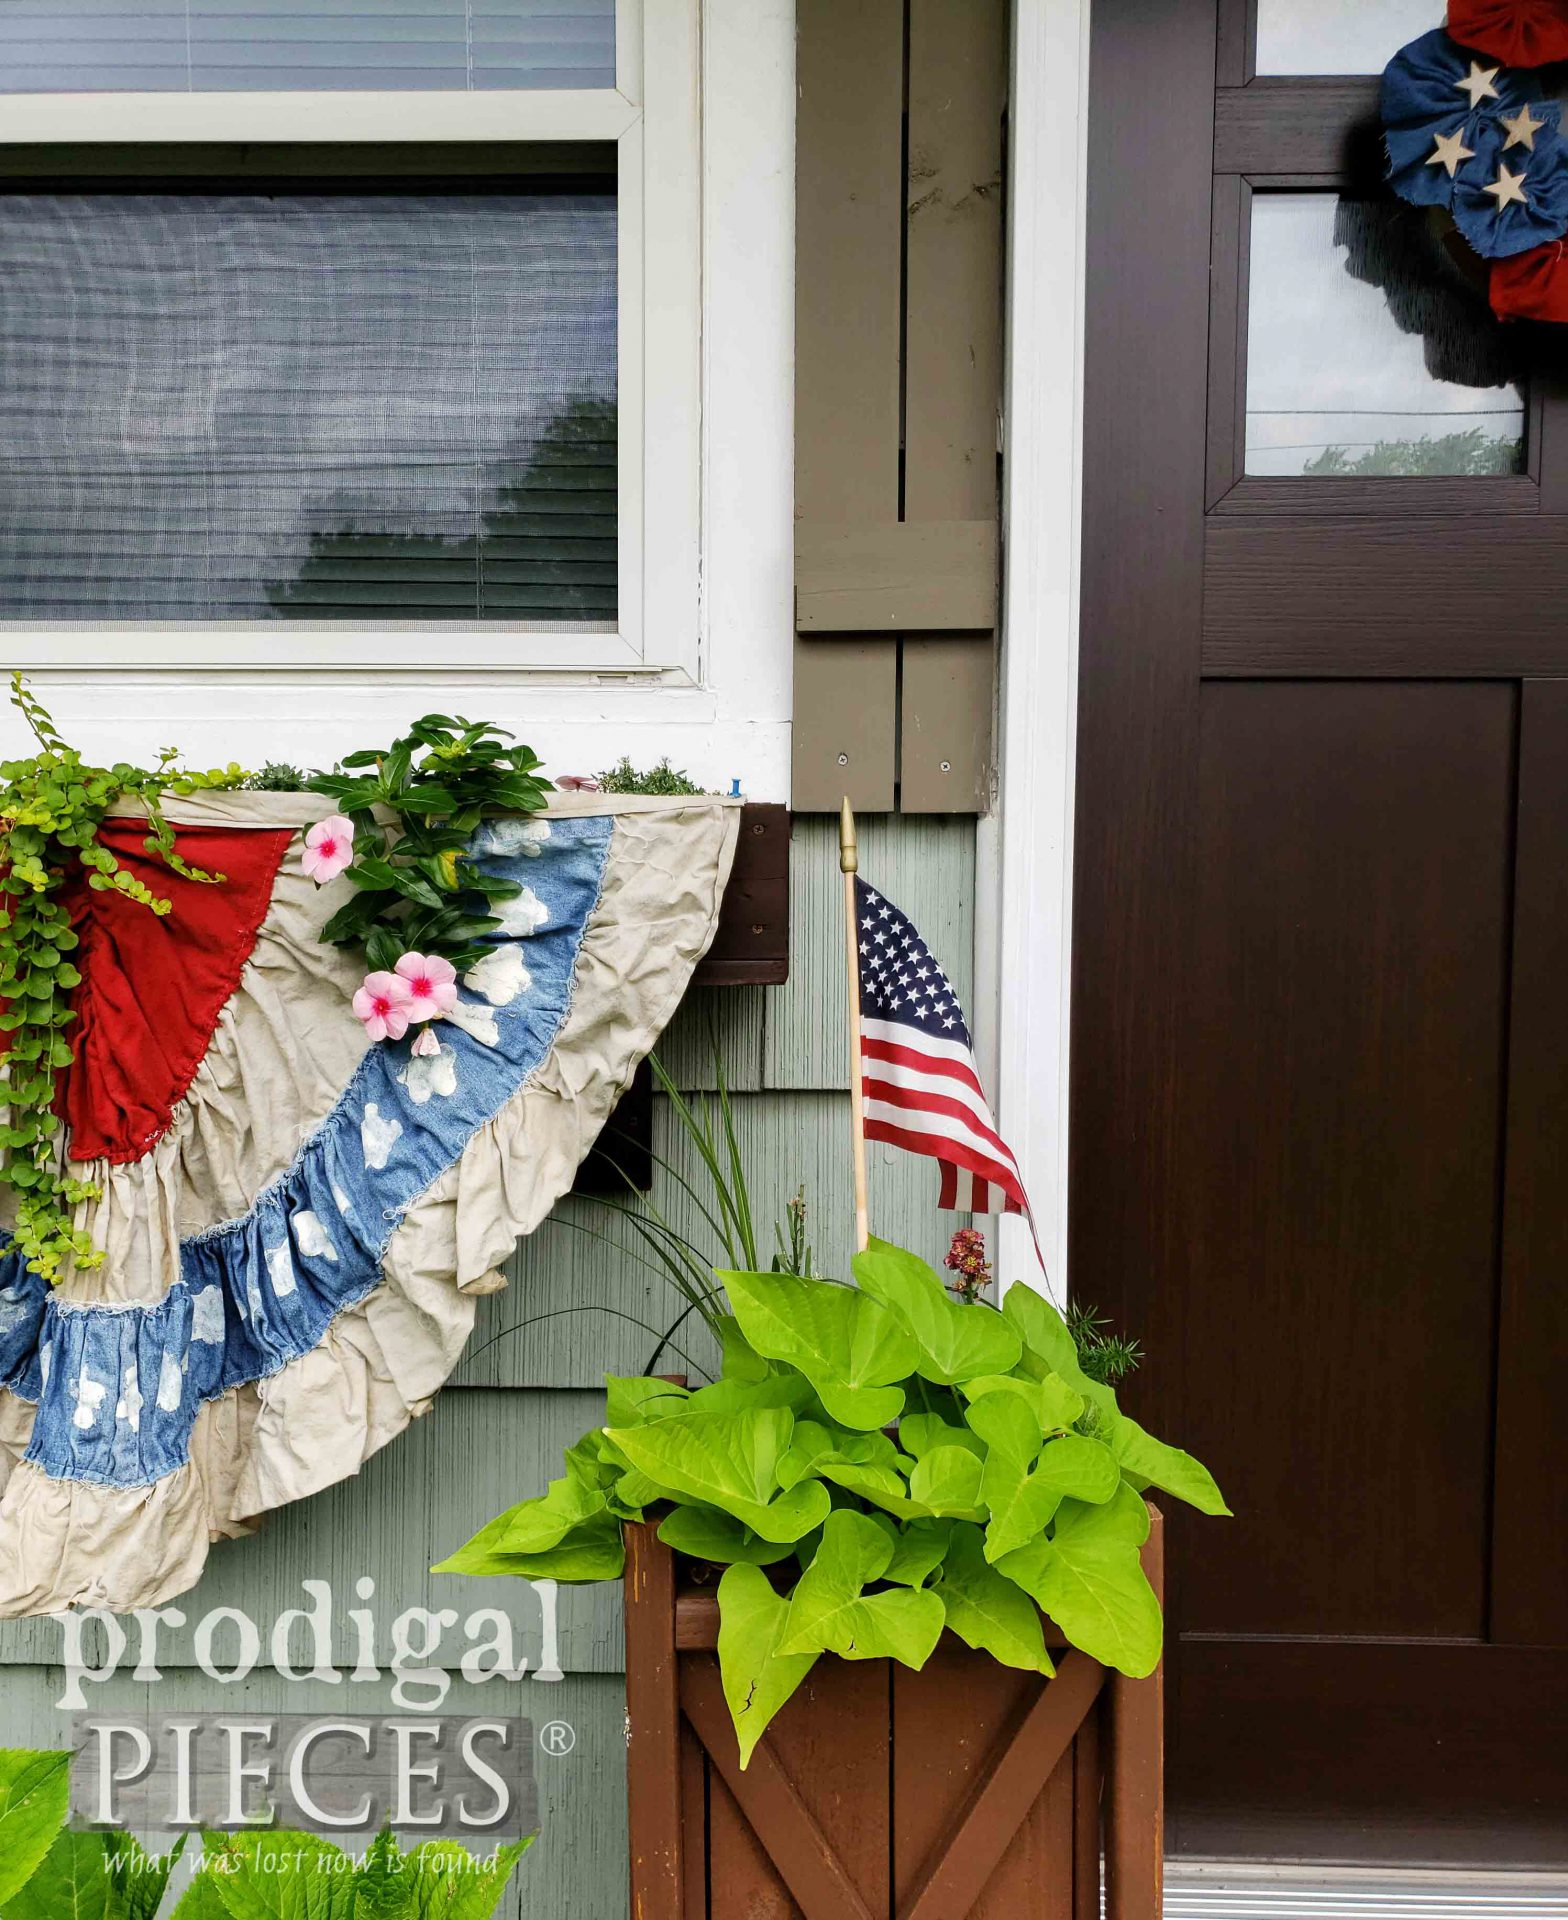 4th of July Decor by Larissa of Prodigal Pieces | prodigalpieces.com #prodigalpieces #diy #home #homedecor #4thofjuly